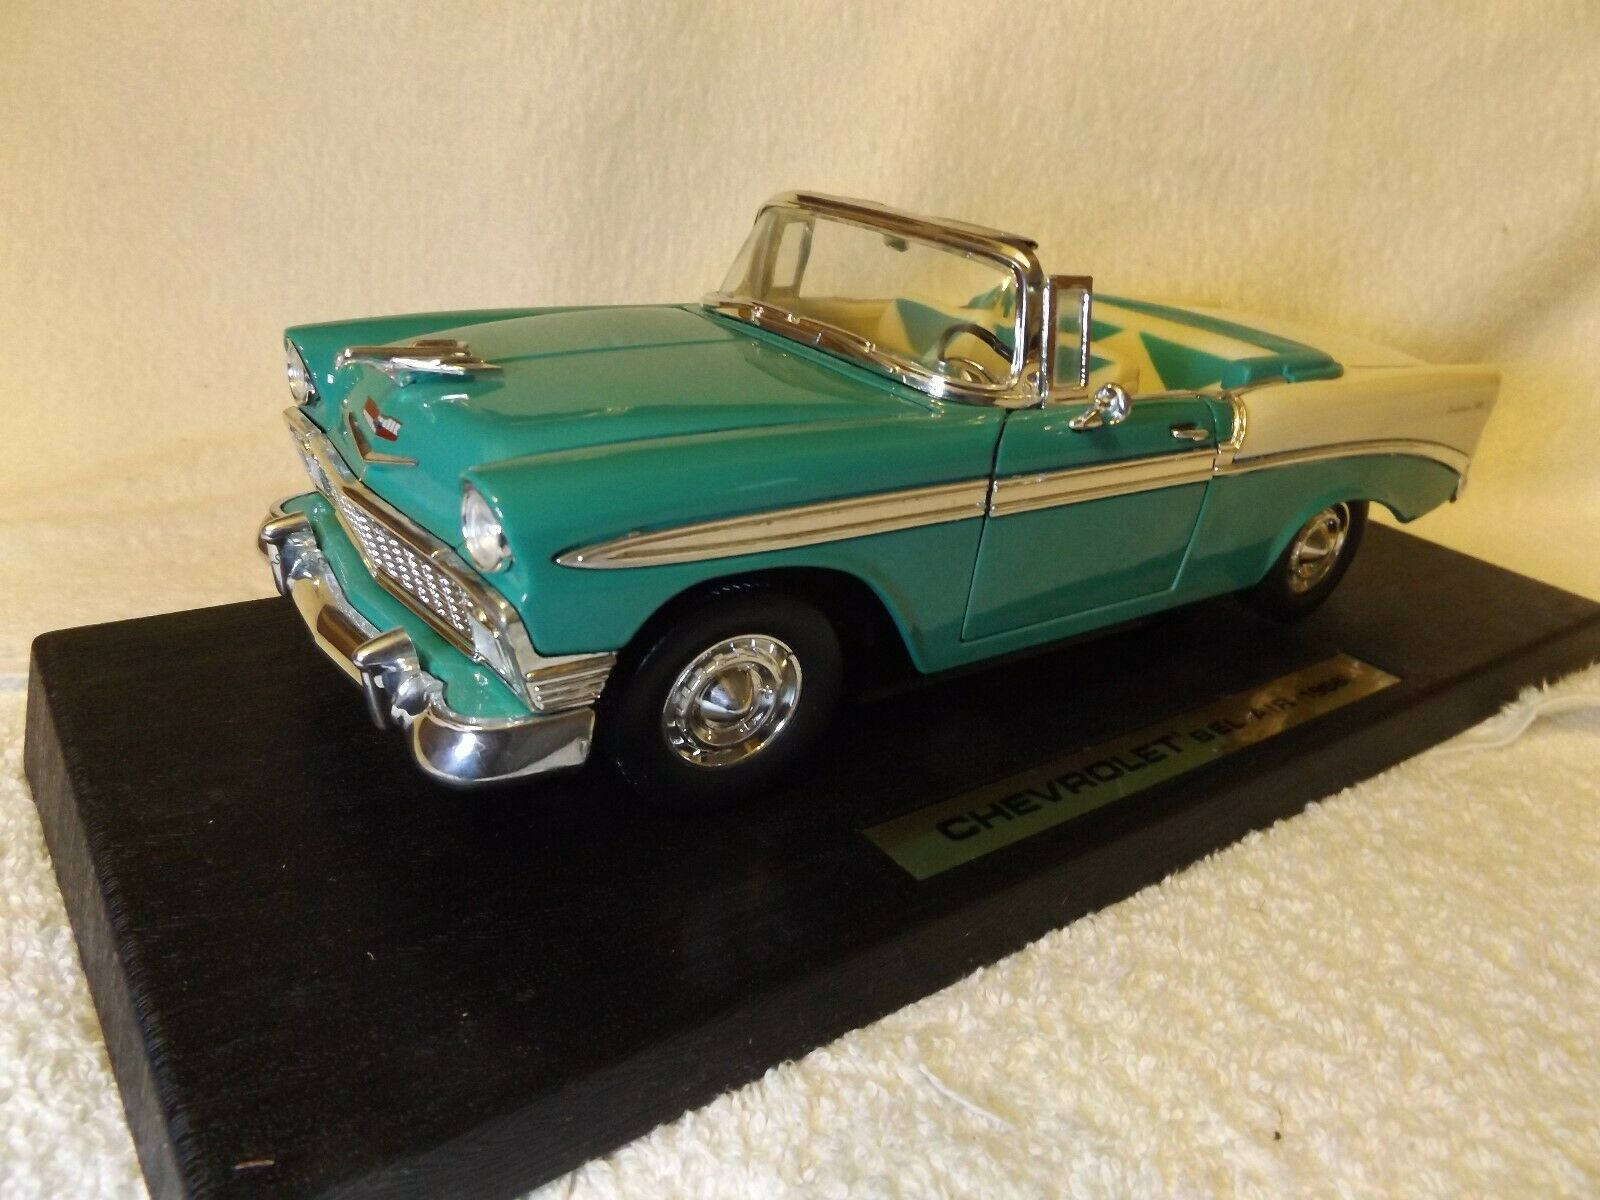 VINTAGE DIECAST--1956 CHEVY BEL AIR AIR AIR CONV--1 18 SCALE-11 1 2  LONG-by ROAD LEGEND 601a68